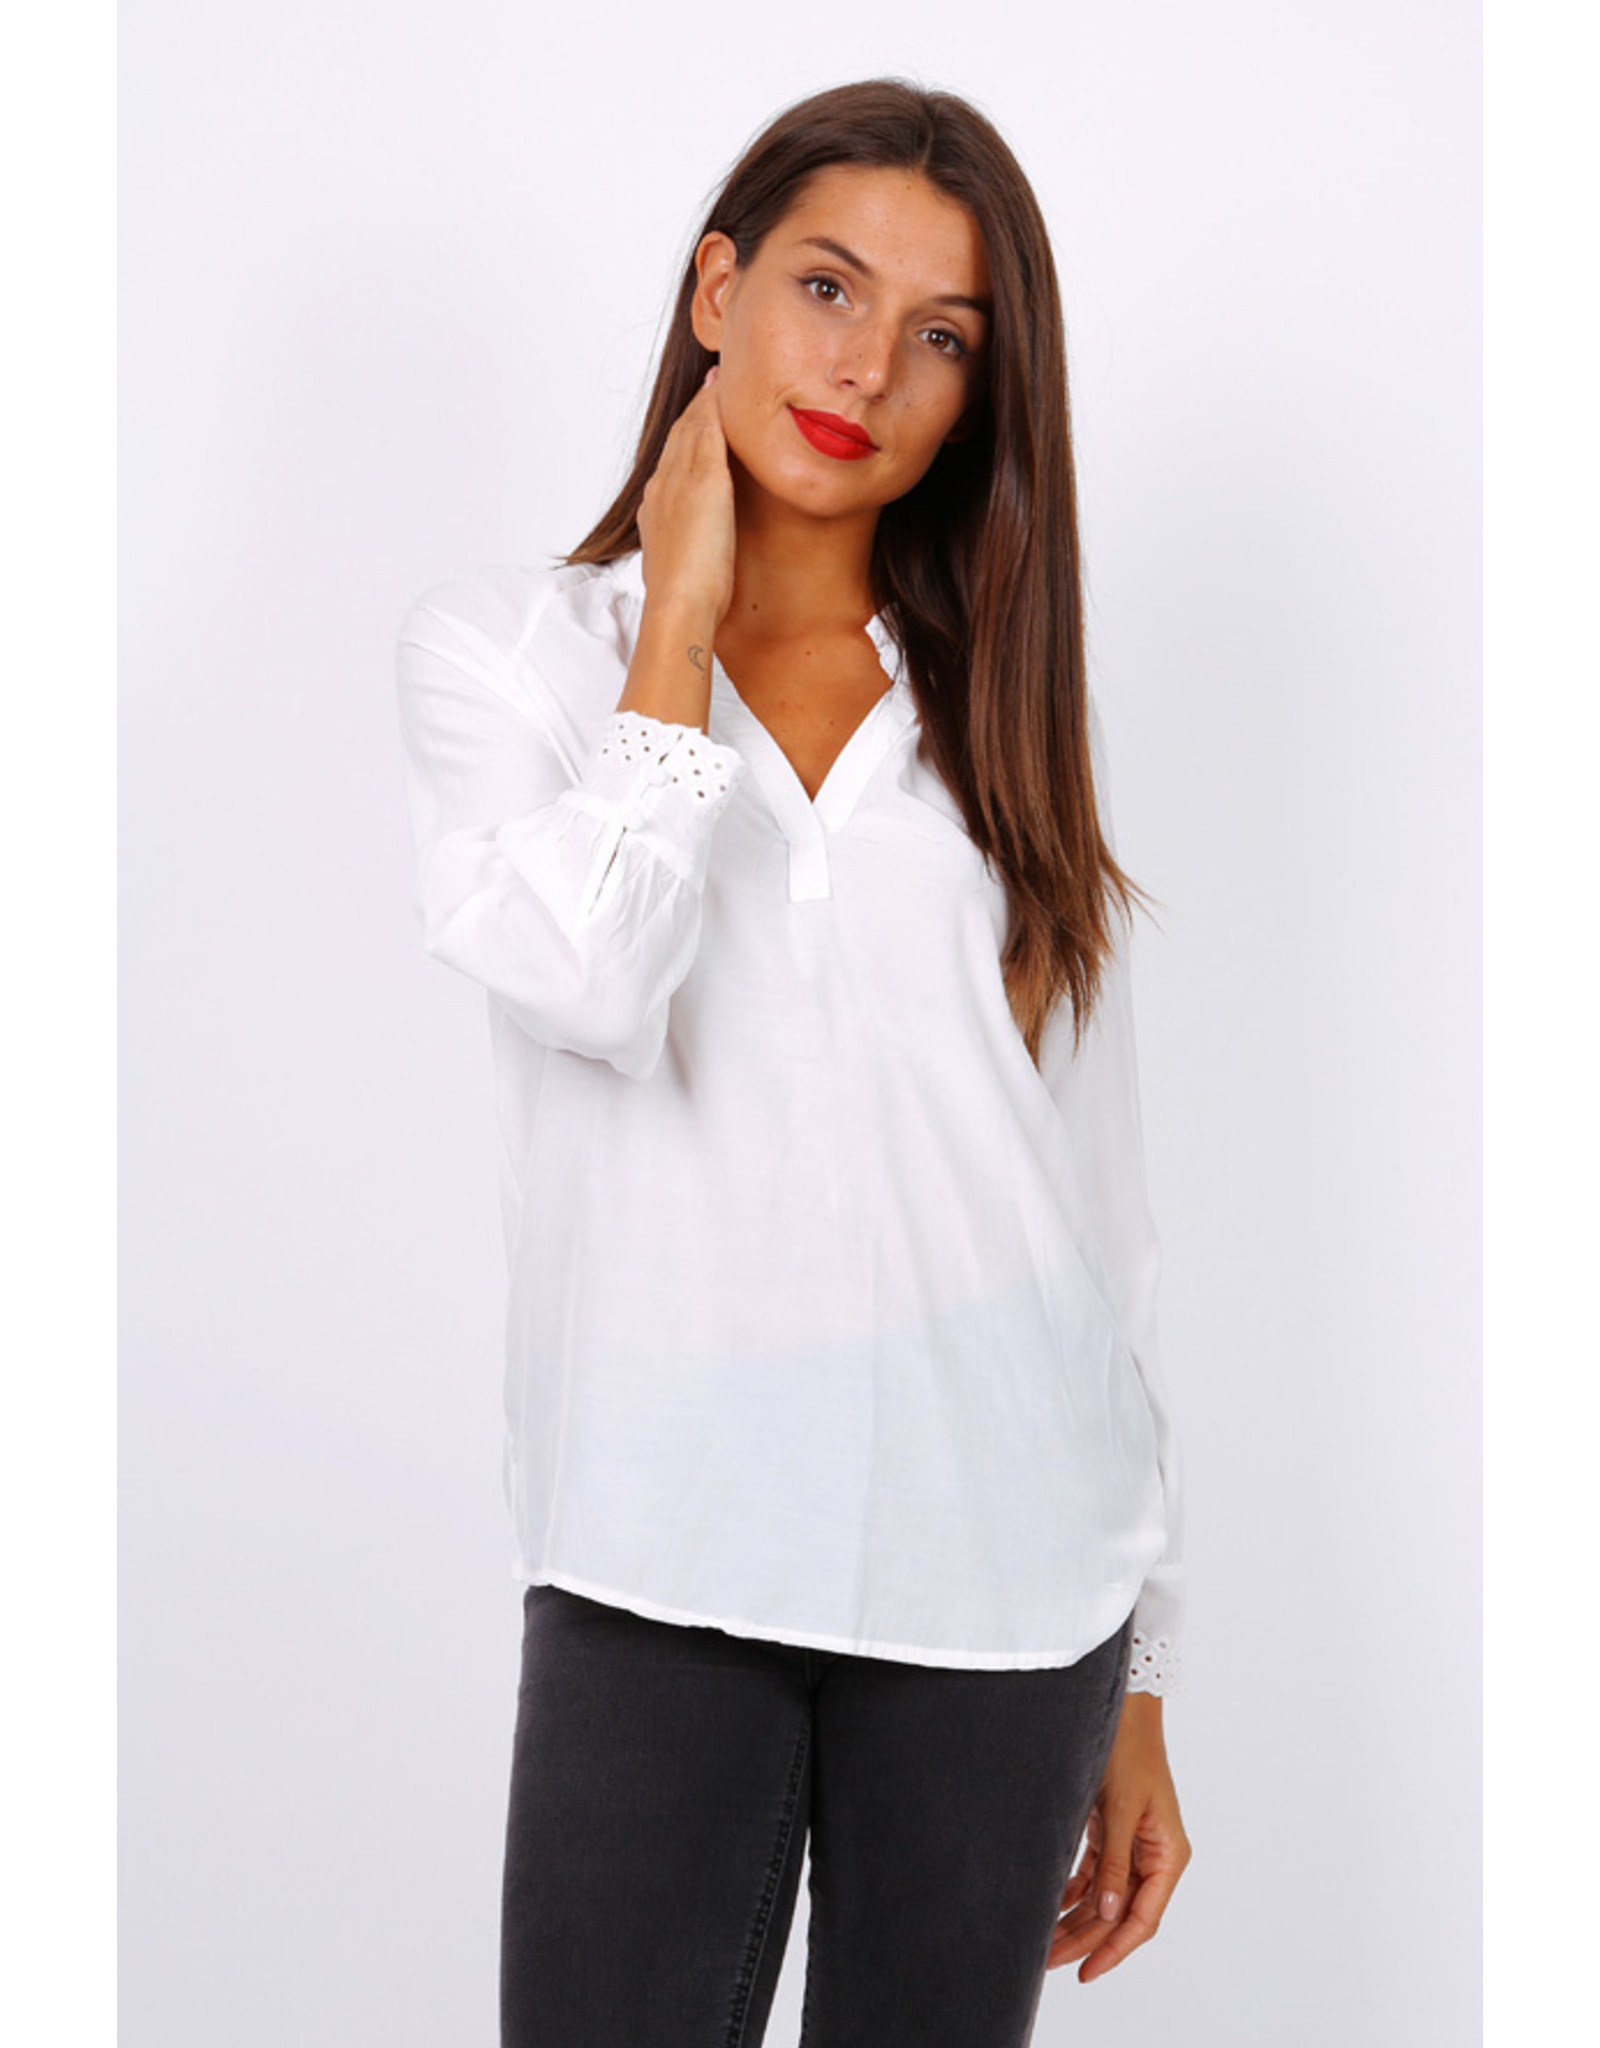 E. W20 MELODY TOP WHITE